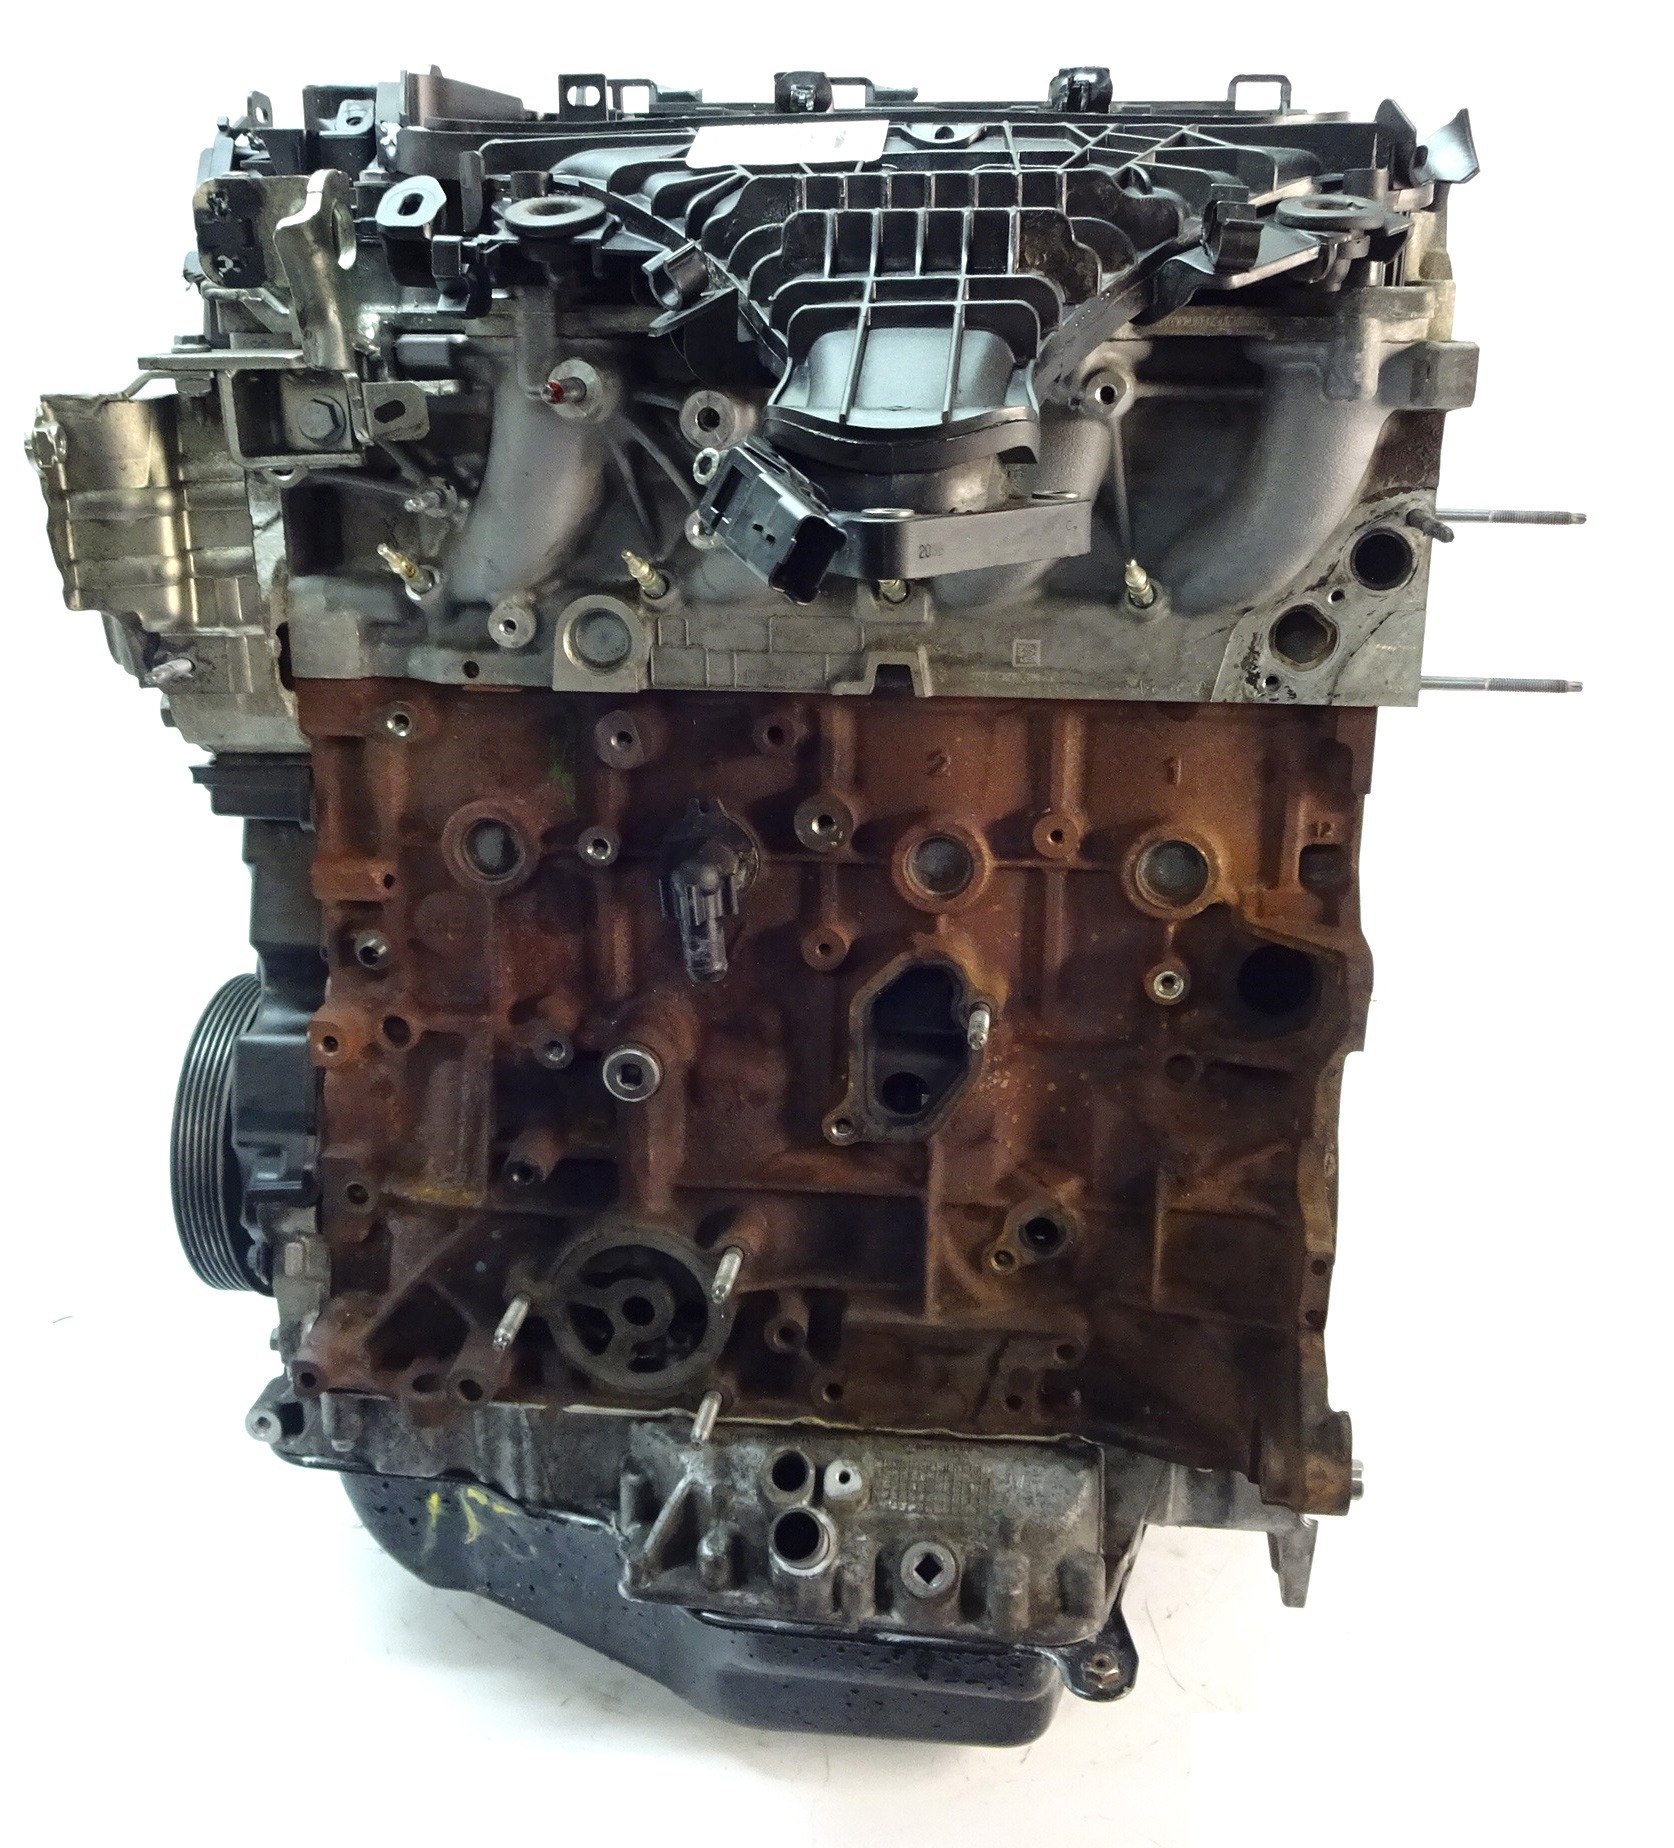 Motor 2011 Ford Grand 2,0 D TDCi Diesel UFDB UFDA 140 PS